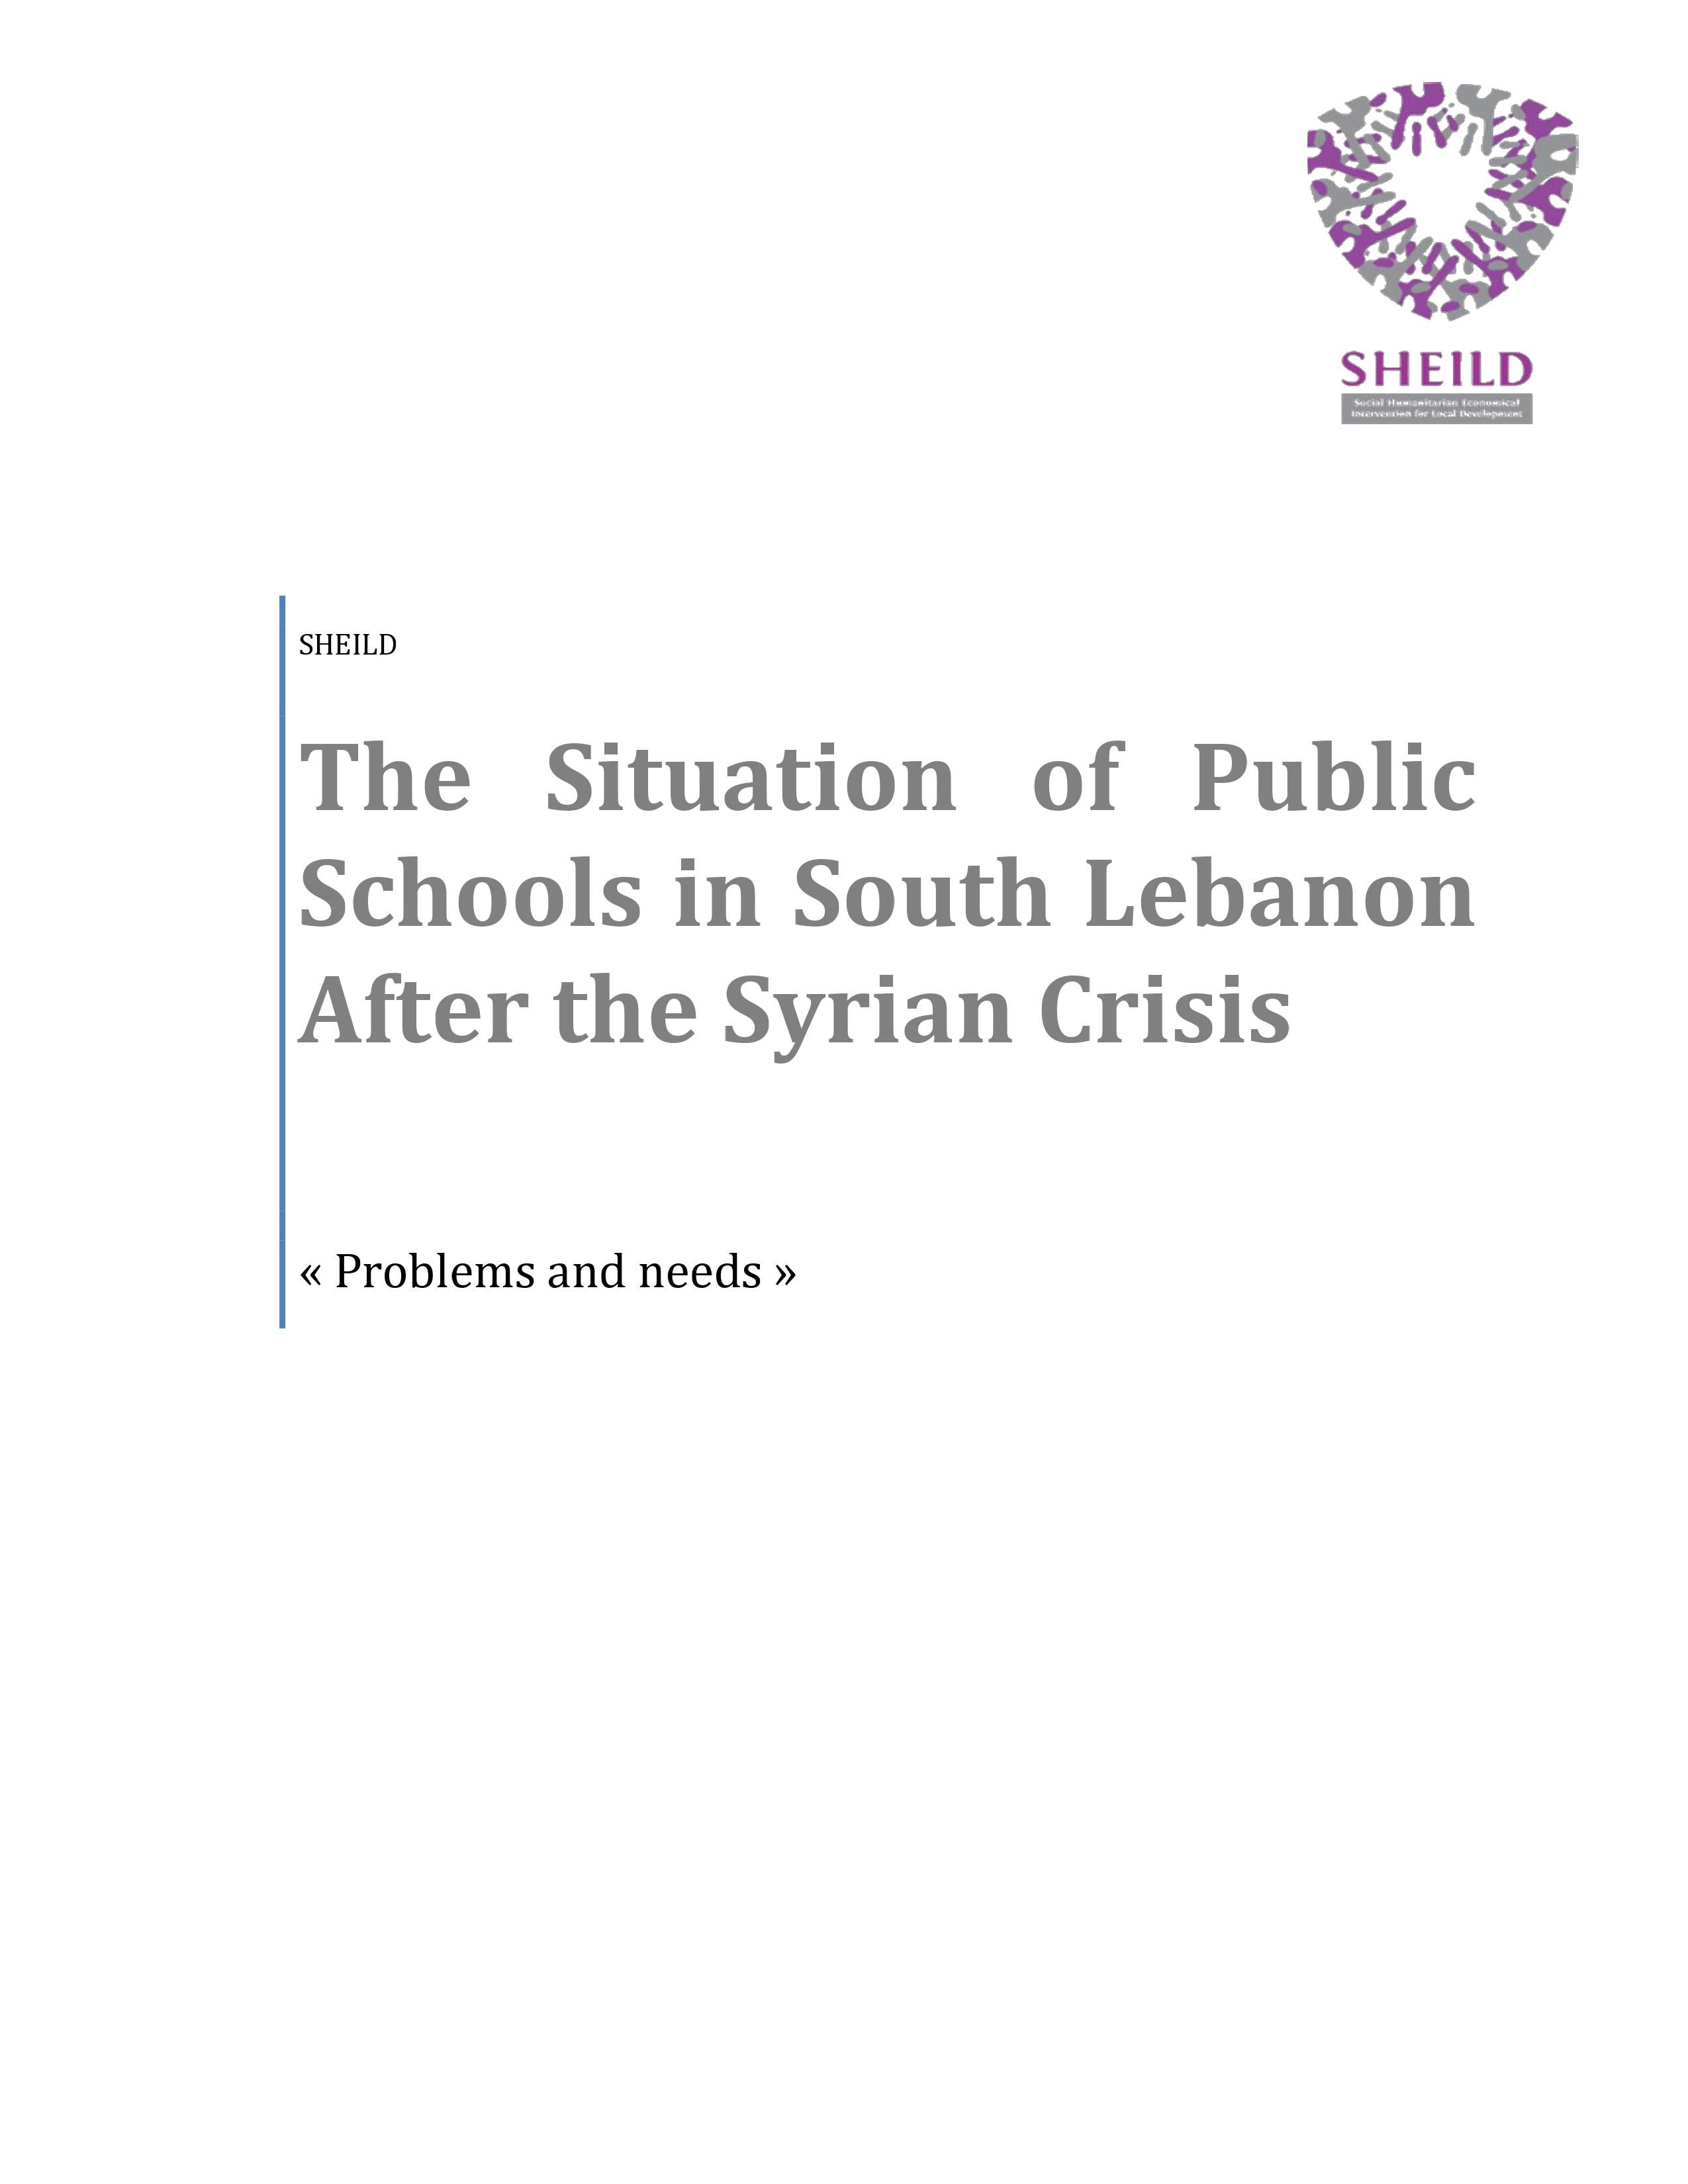 The Situation Of Public Schools In South Lebanon After The Syrian Crisis- Problems And Needs